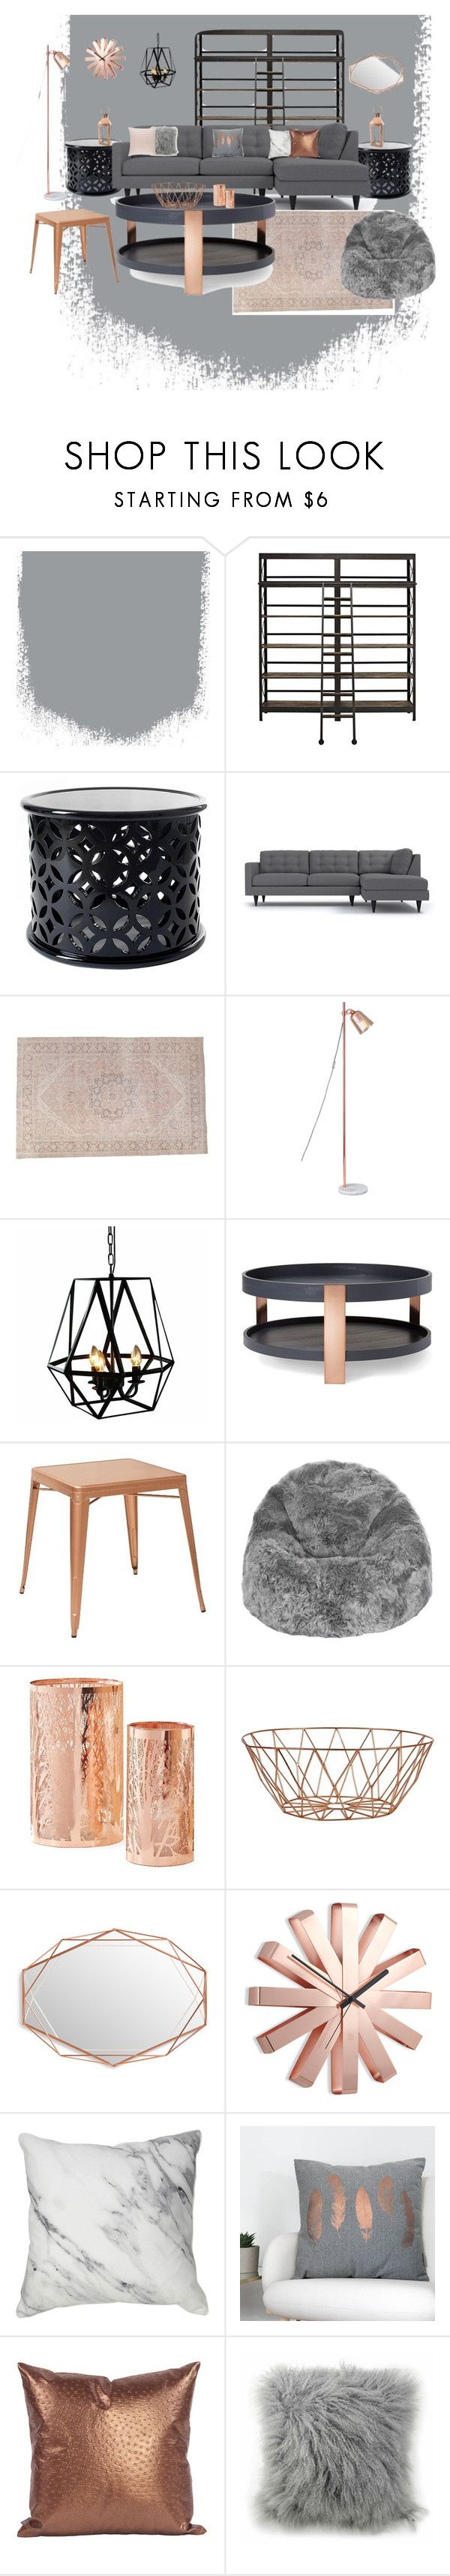 """Blush, Copper, and Gray Living Room"" by nforbes on Polyvore featuring interior, interiors, interior design, home, home decor, interior decorating, Adesso, Warehouse of Tiffany, Modern by Dwell Magazine and Office Star"